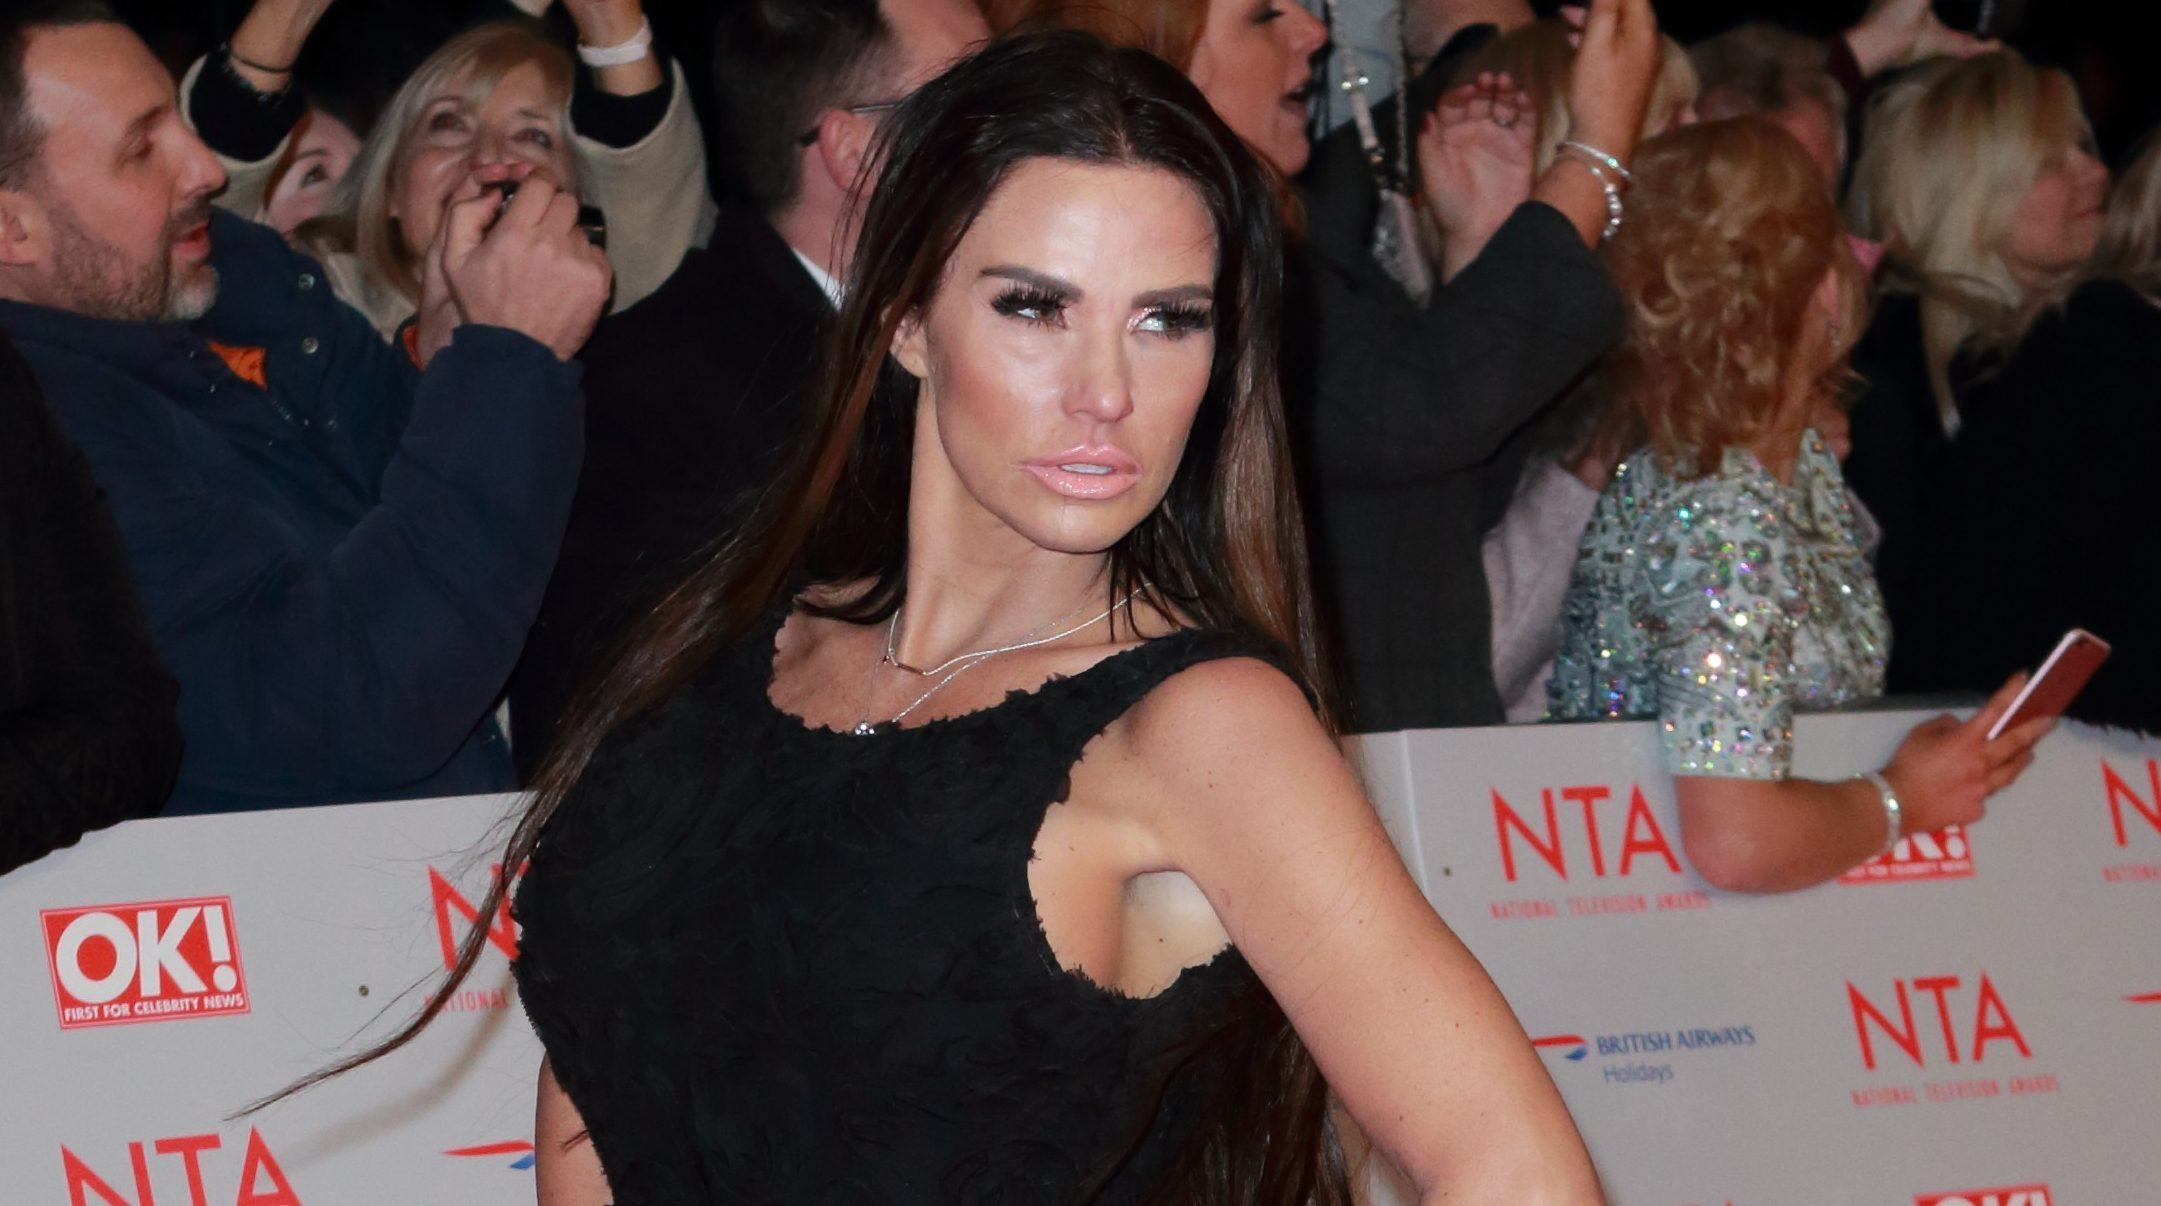 Katie Price fans SHOCKED by the 'dirty' state of her home